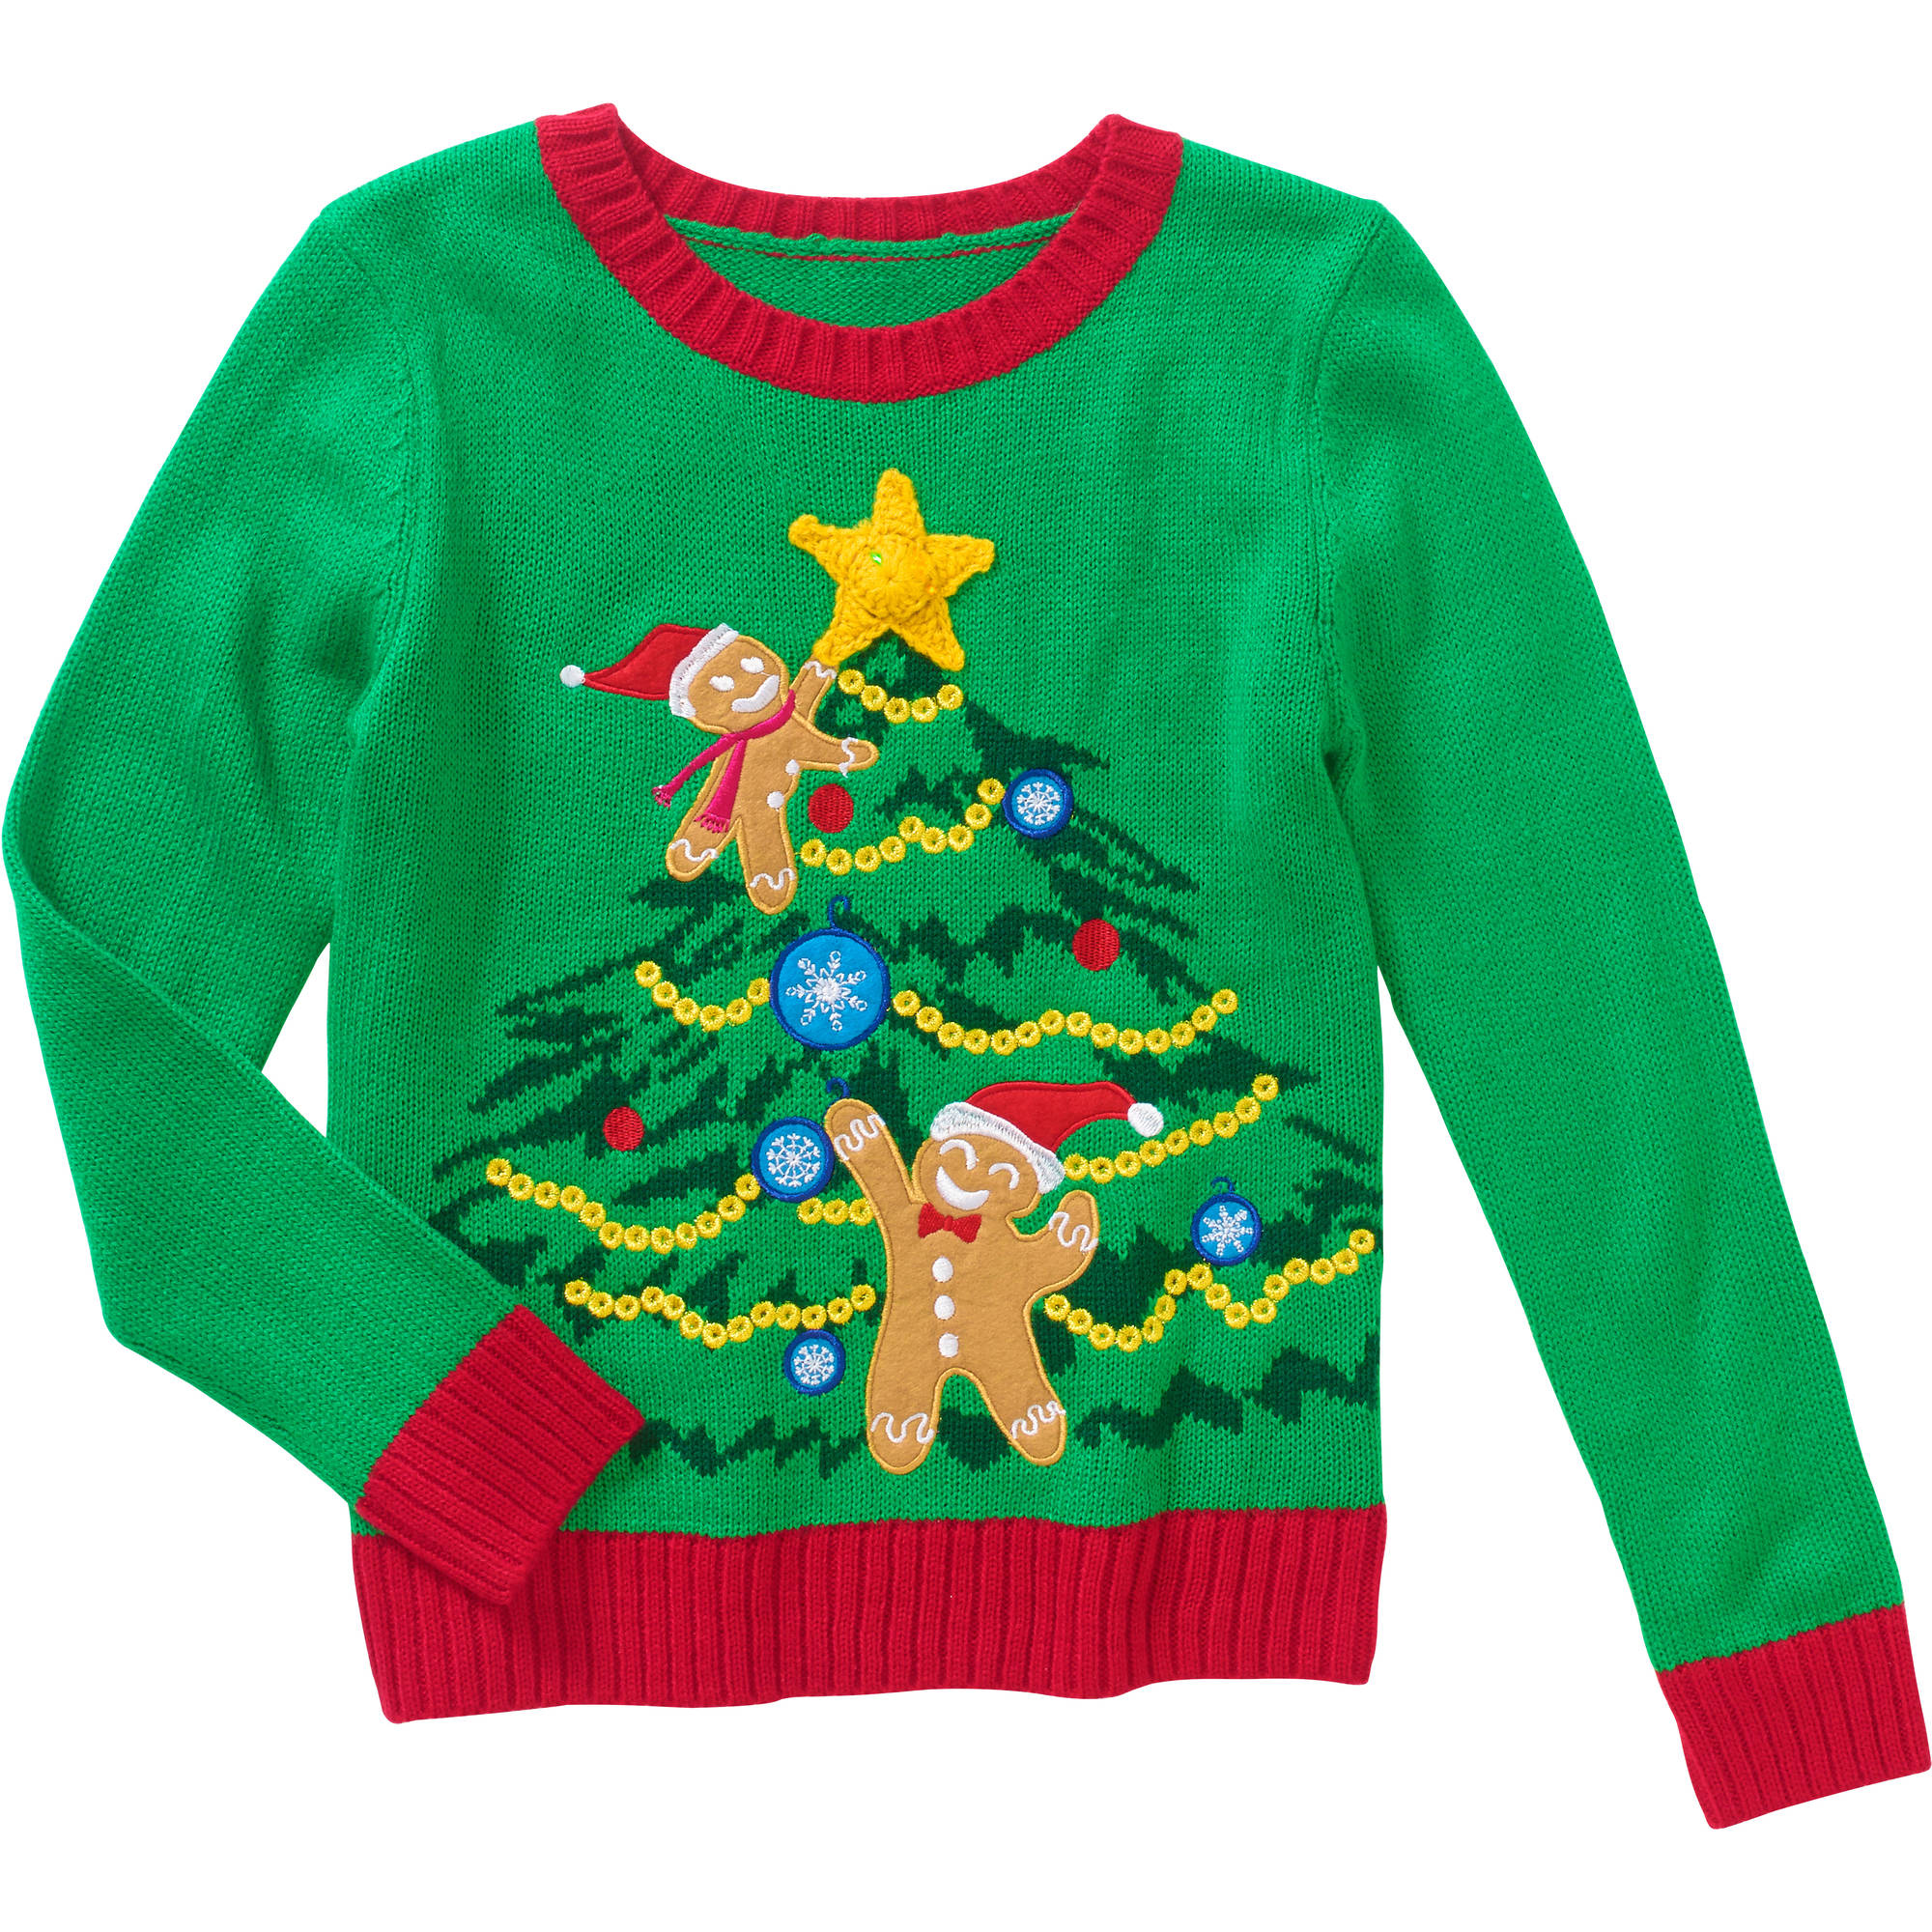 Holiday Time Girls' Light Up Holiday Sweater